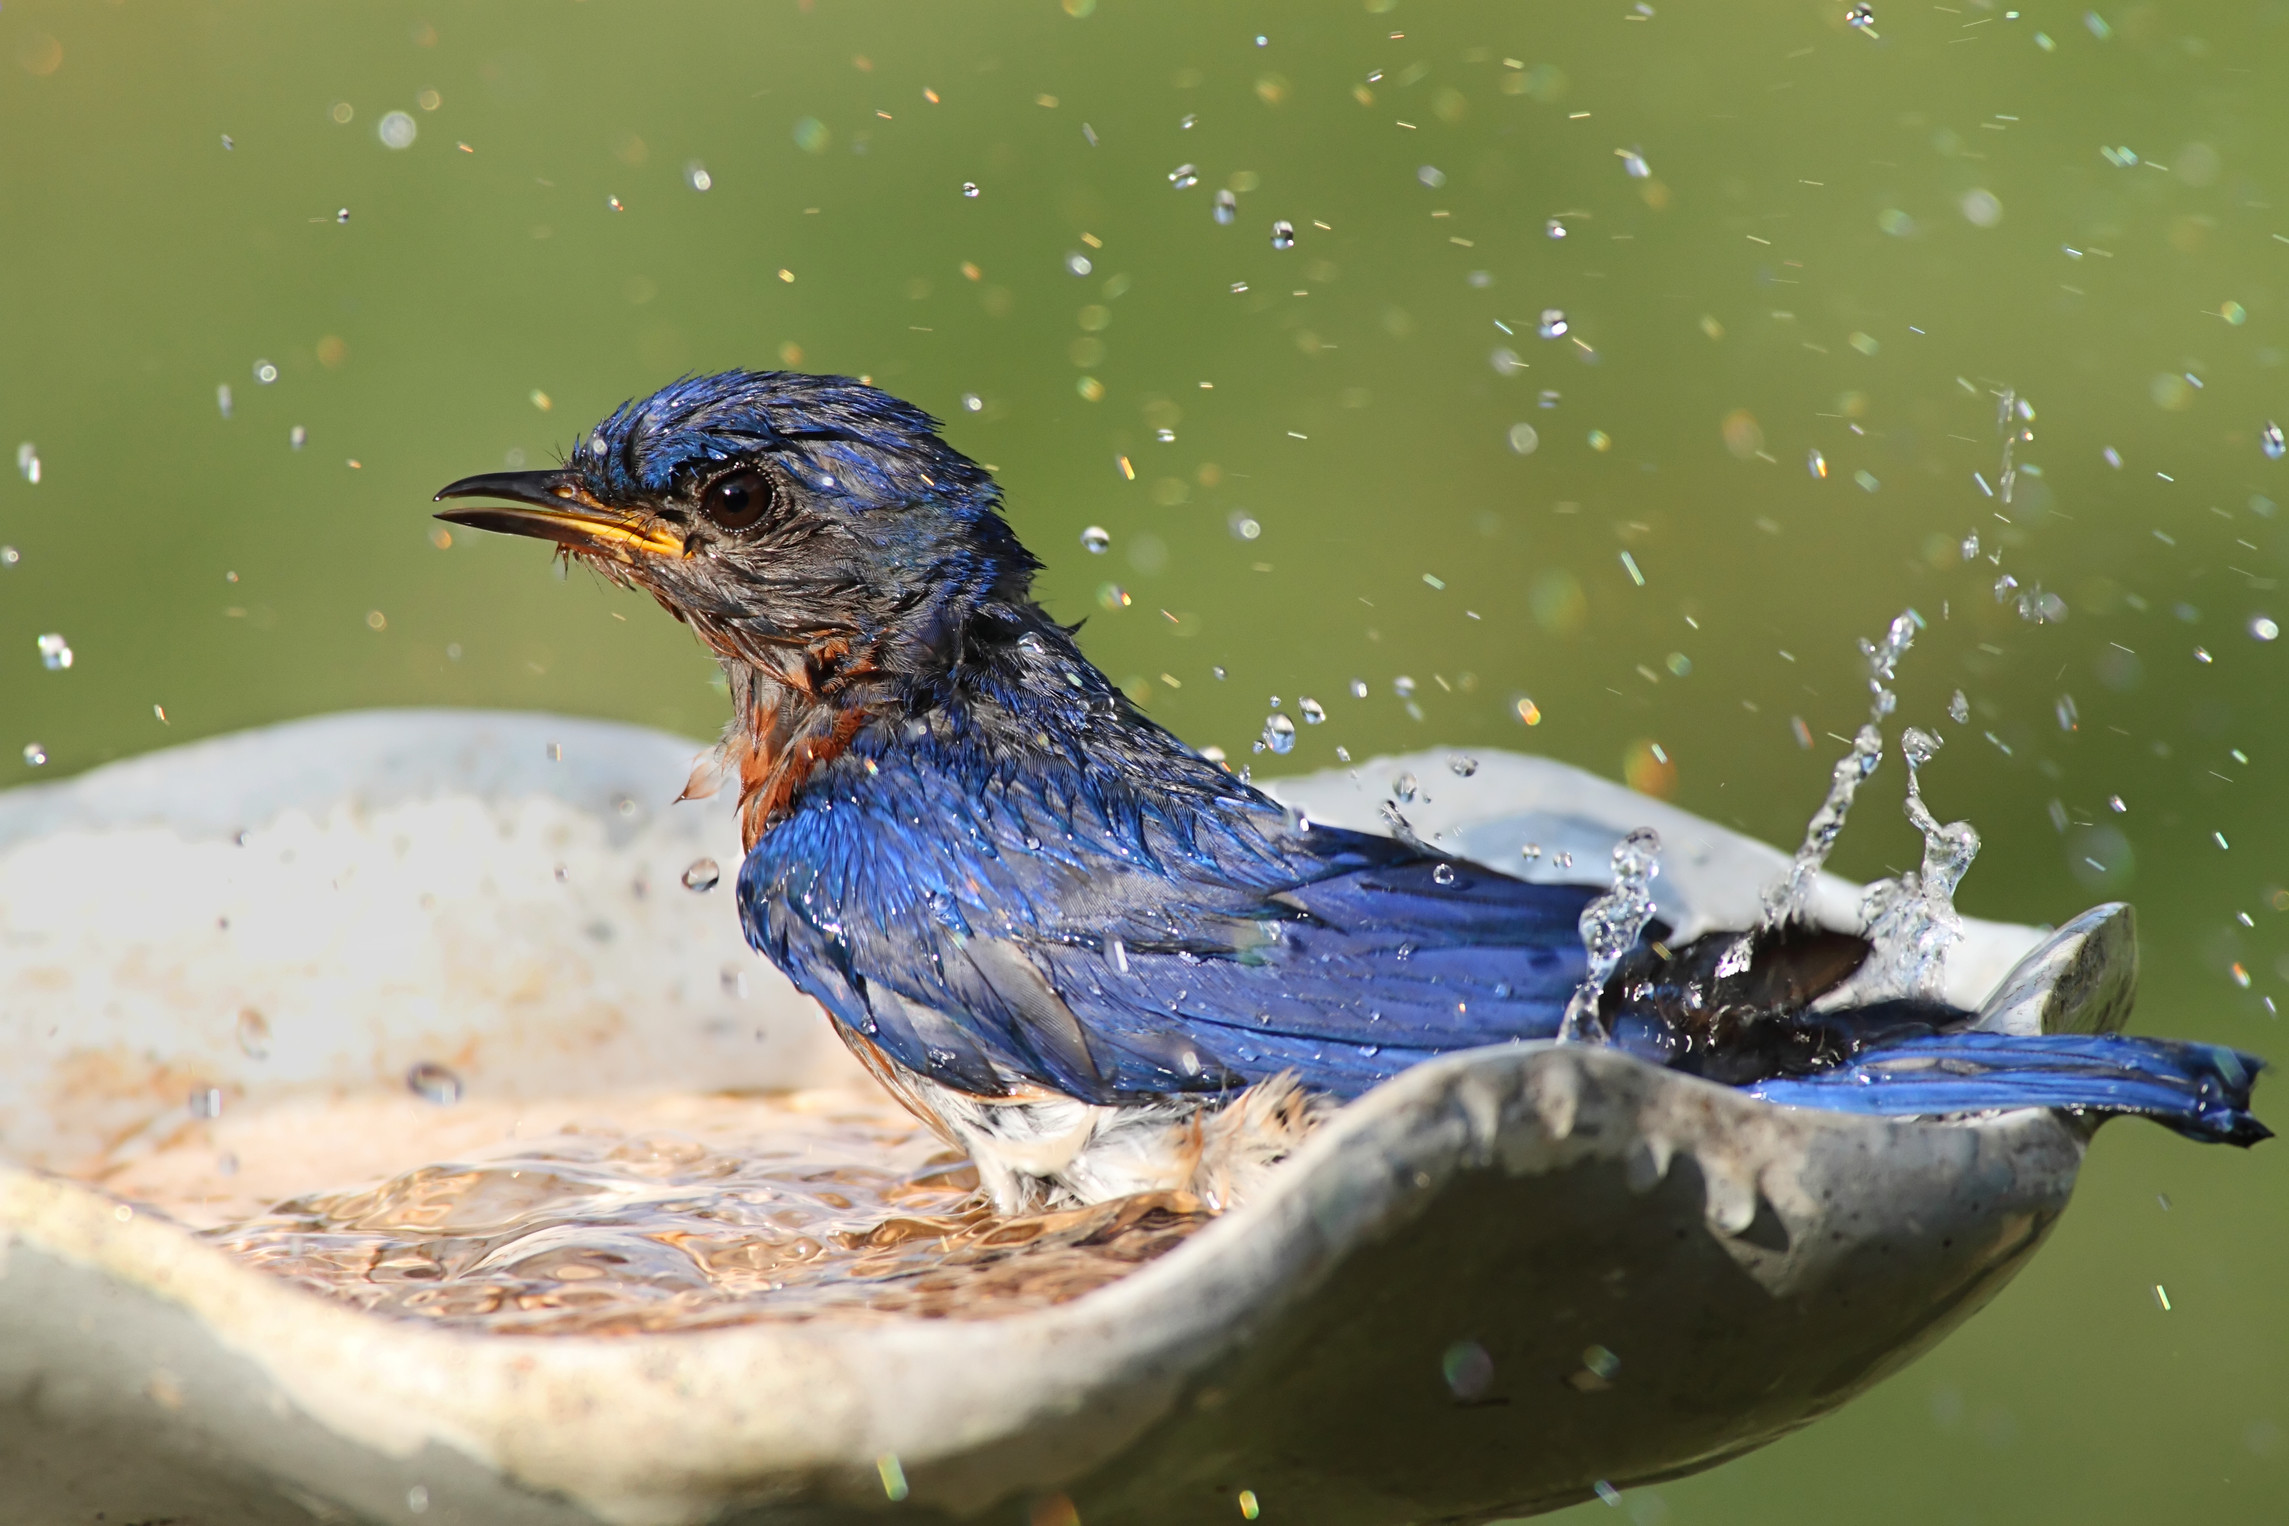 HomeDabbler blue bird taking a bath in a bird bath.